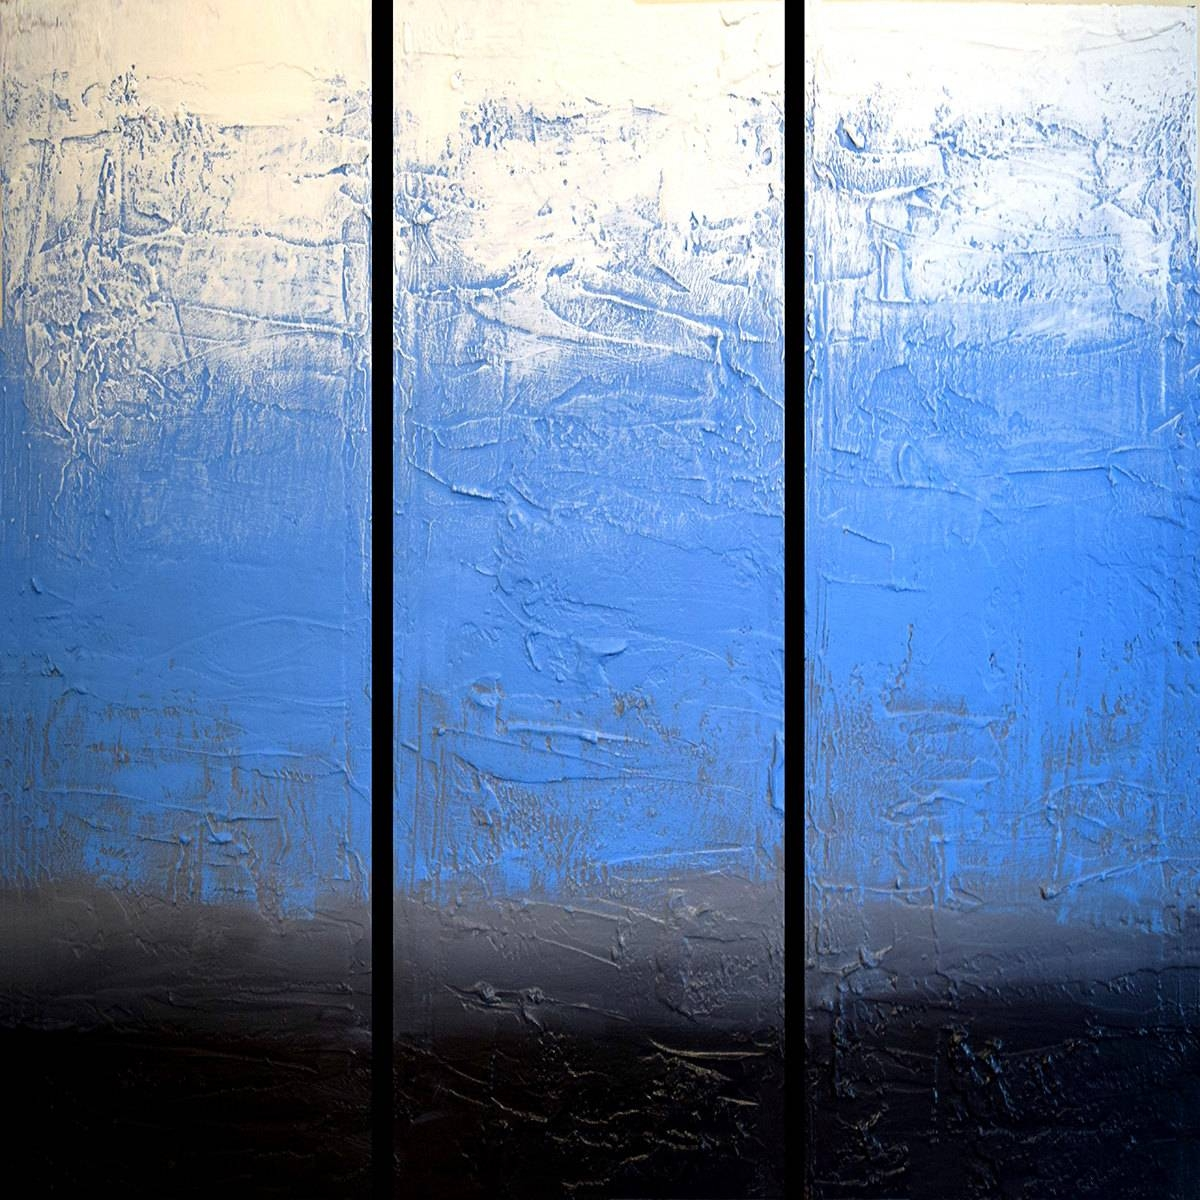 Extra Large Wall Sculpture Art Triptych 3 Panel Wall Art With Regard To Best And Newest Large Triptych Wall Art (Gallery 12 of 20)